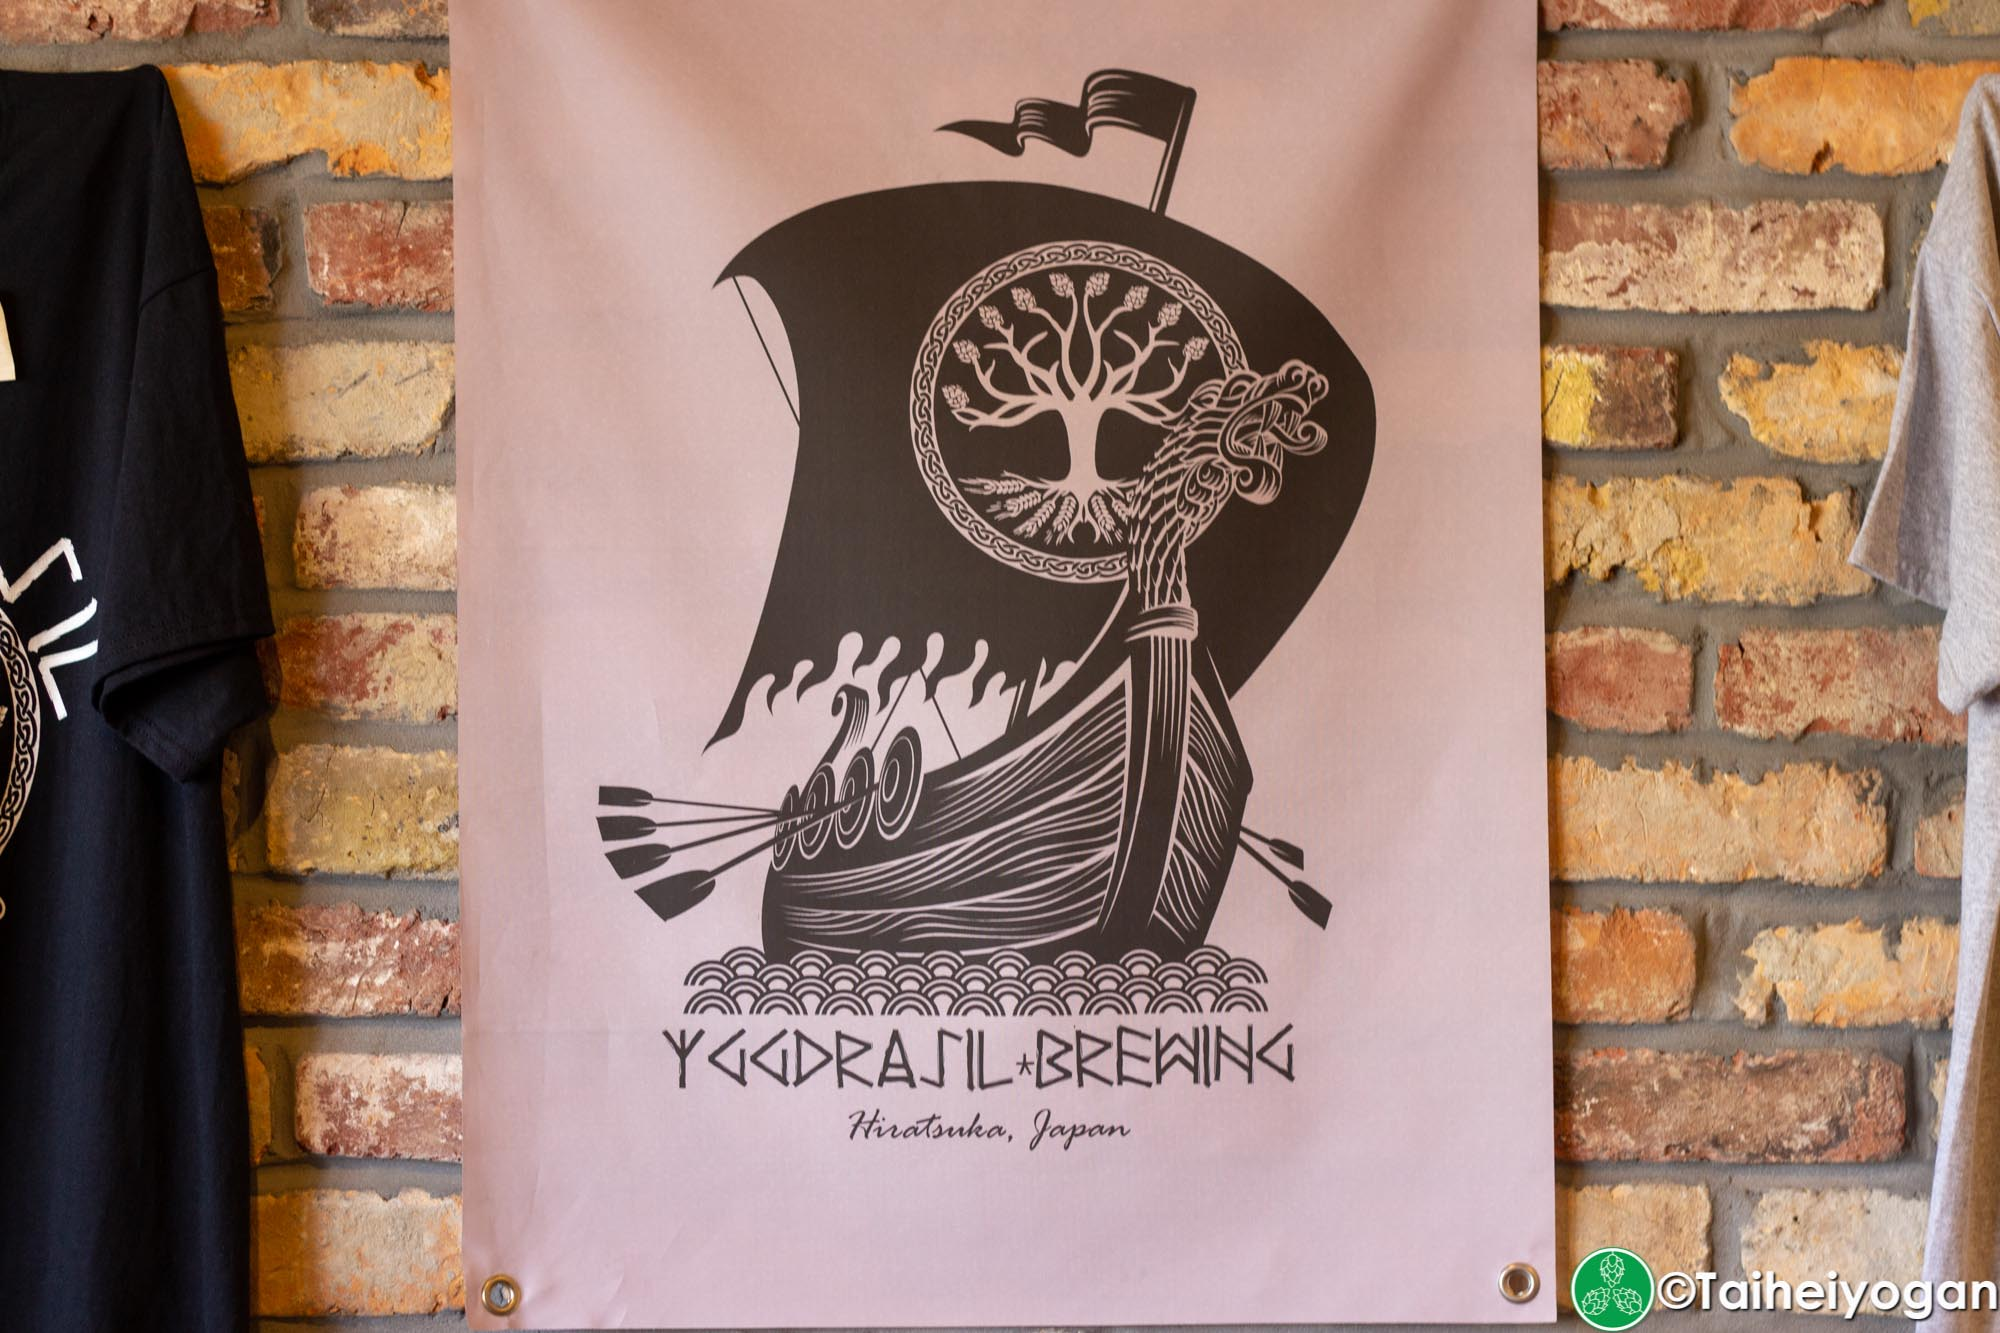 Yggdrasil Brewing - Interior - Decorations